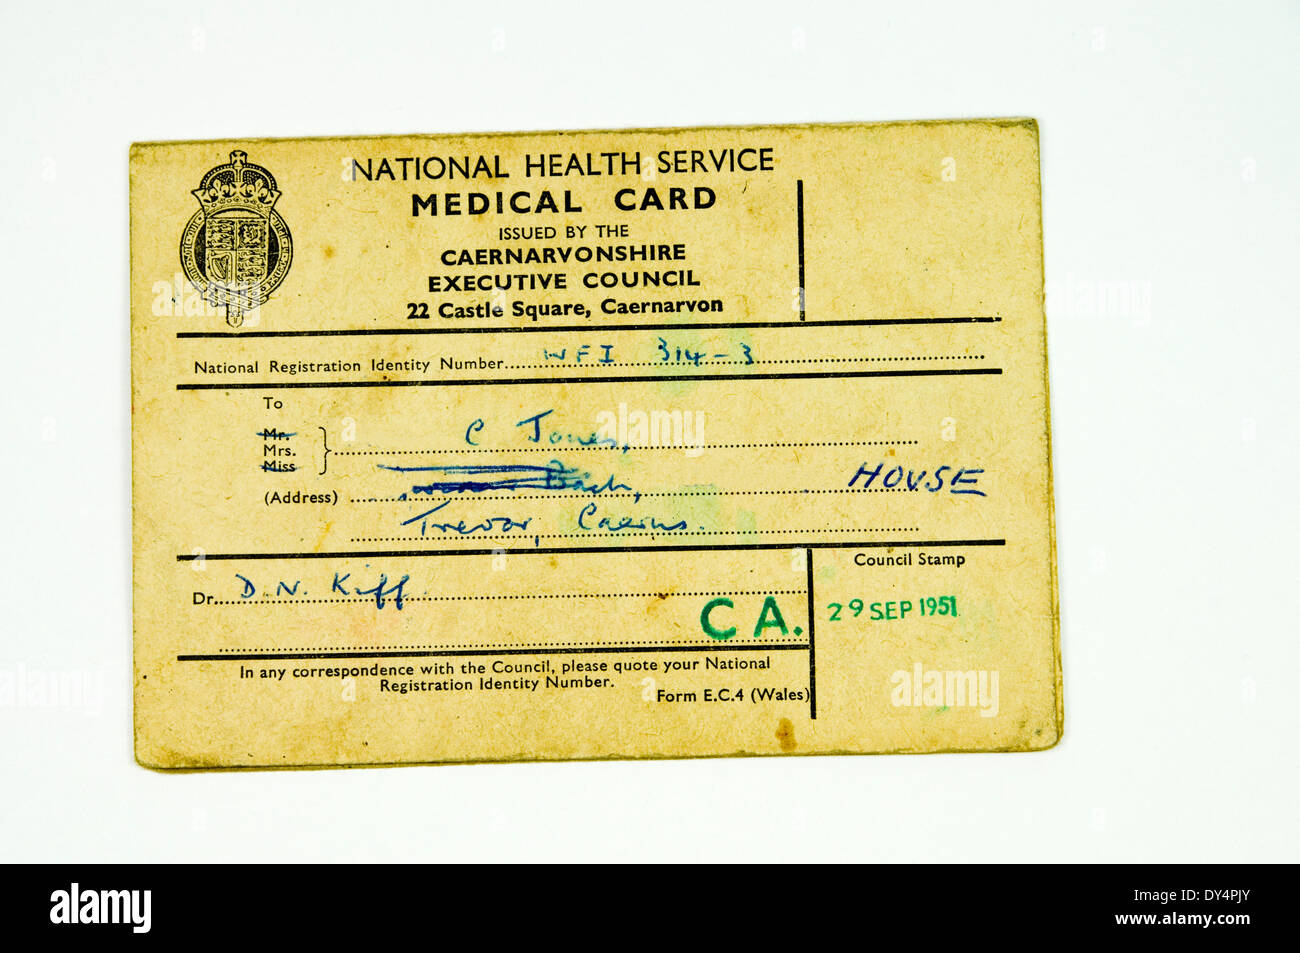 Old National Health Service Medical Card. Stock Photo